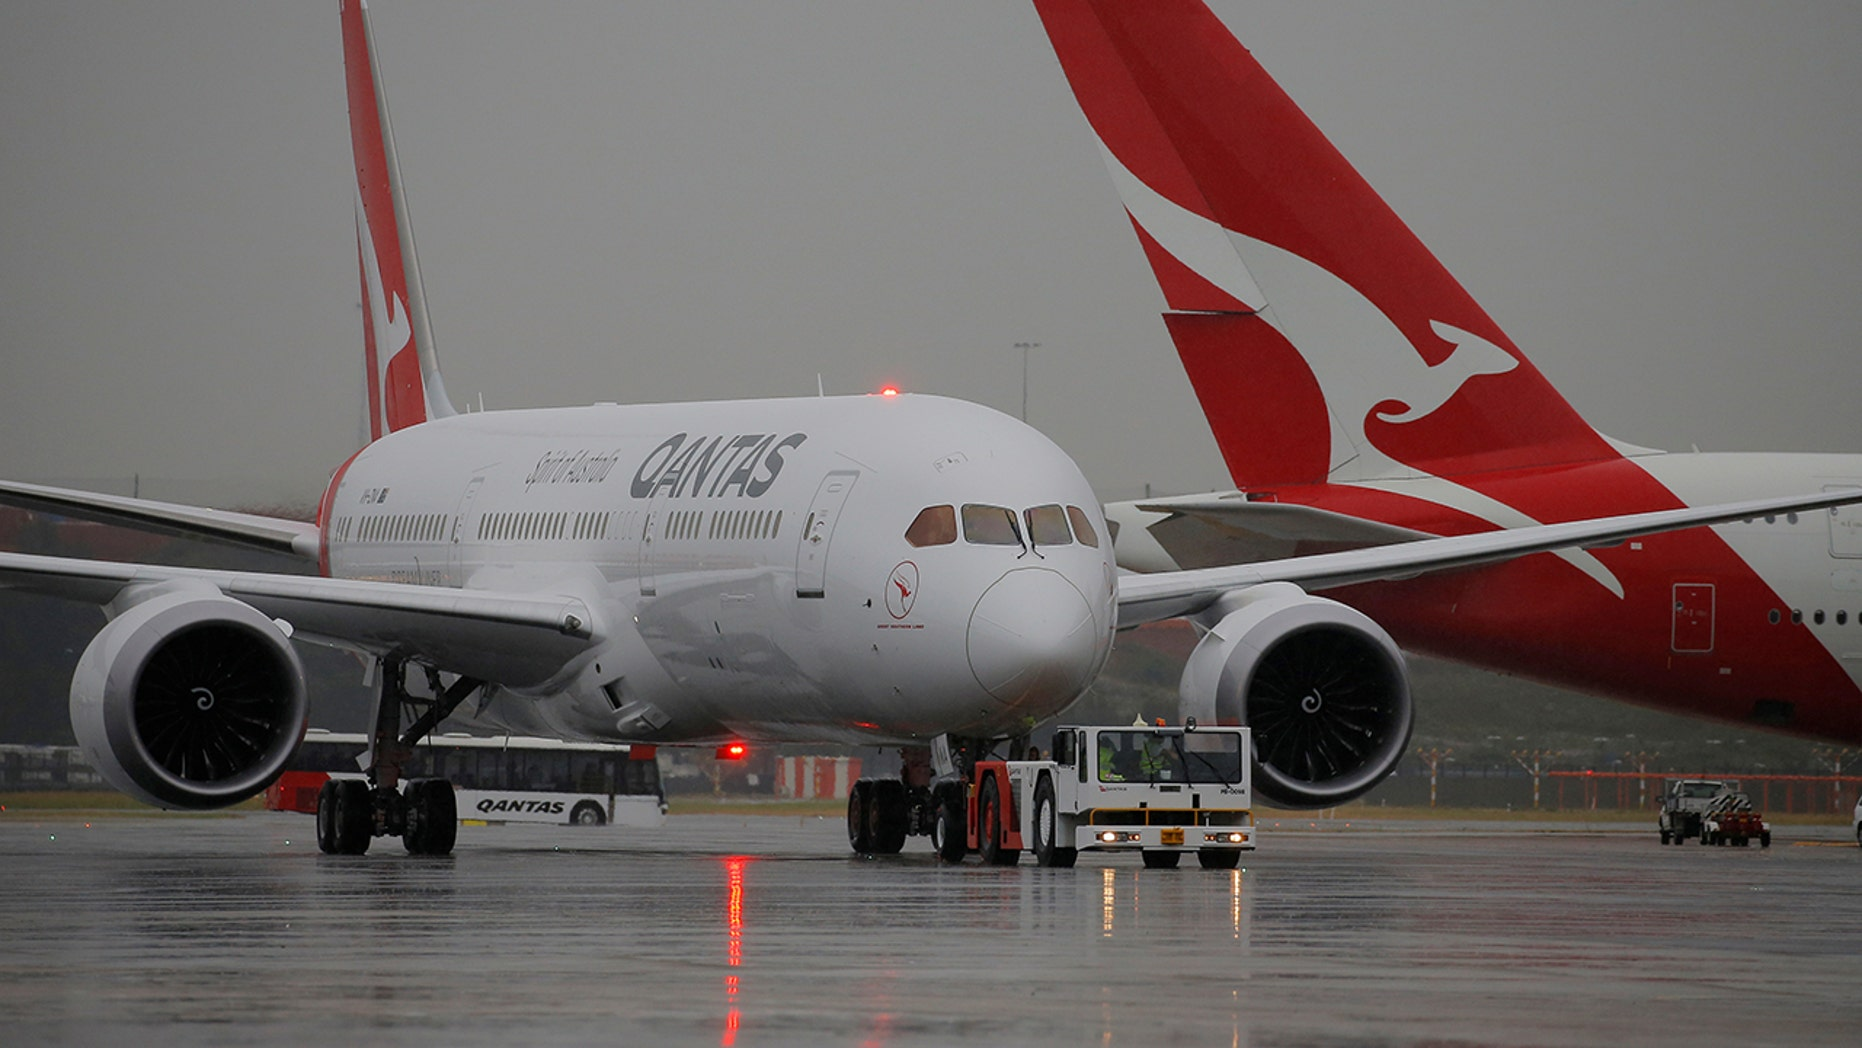 Qantas Airline's airport lounge refused entry to singer Joanne Catherall because of her shoes.